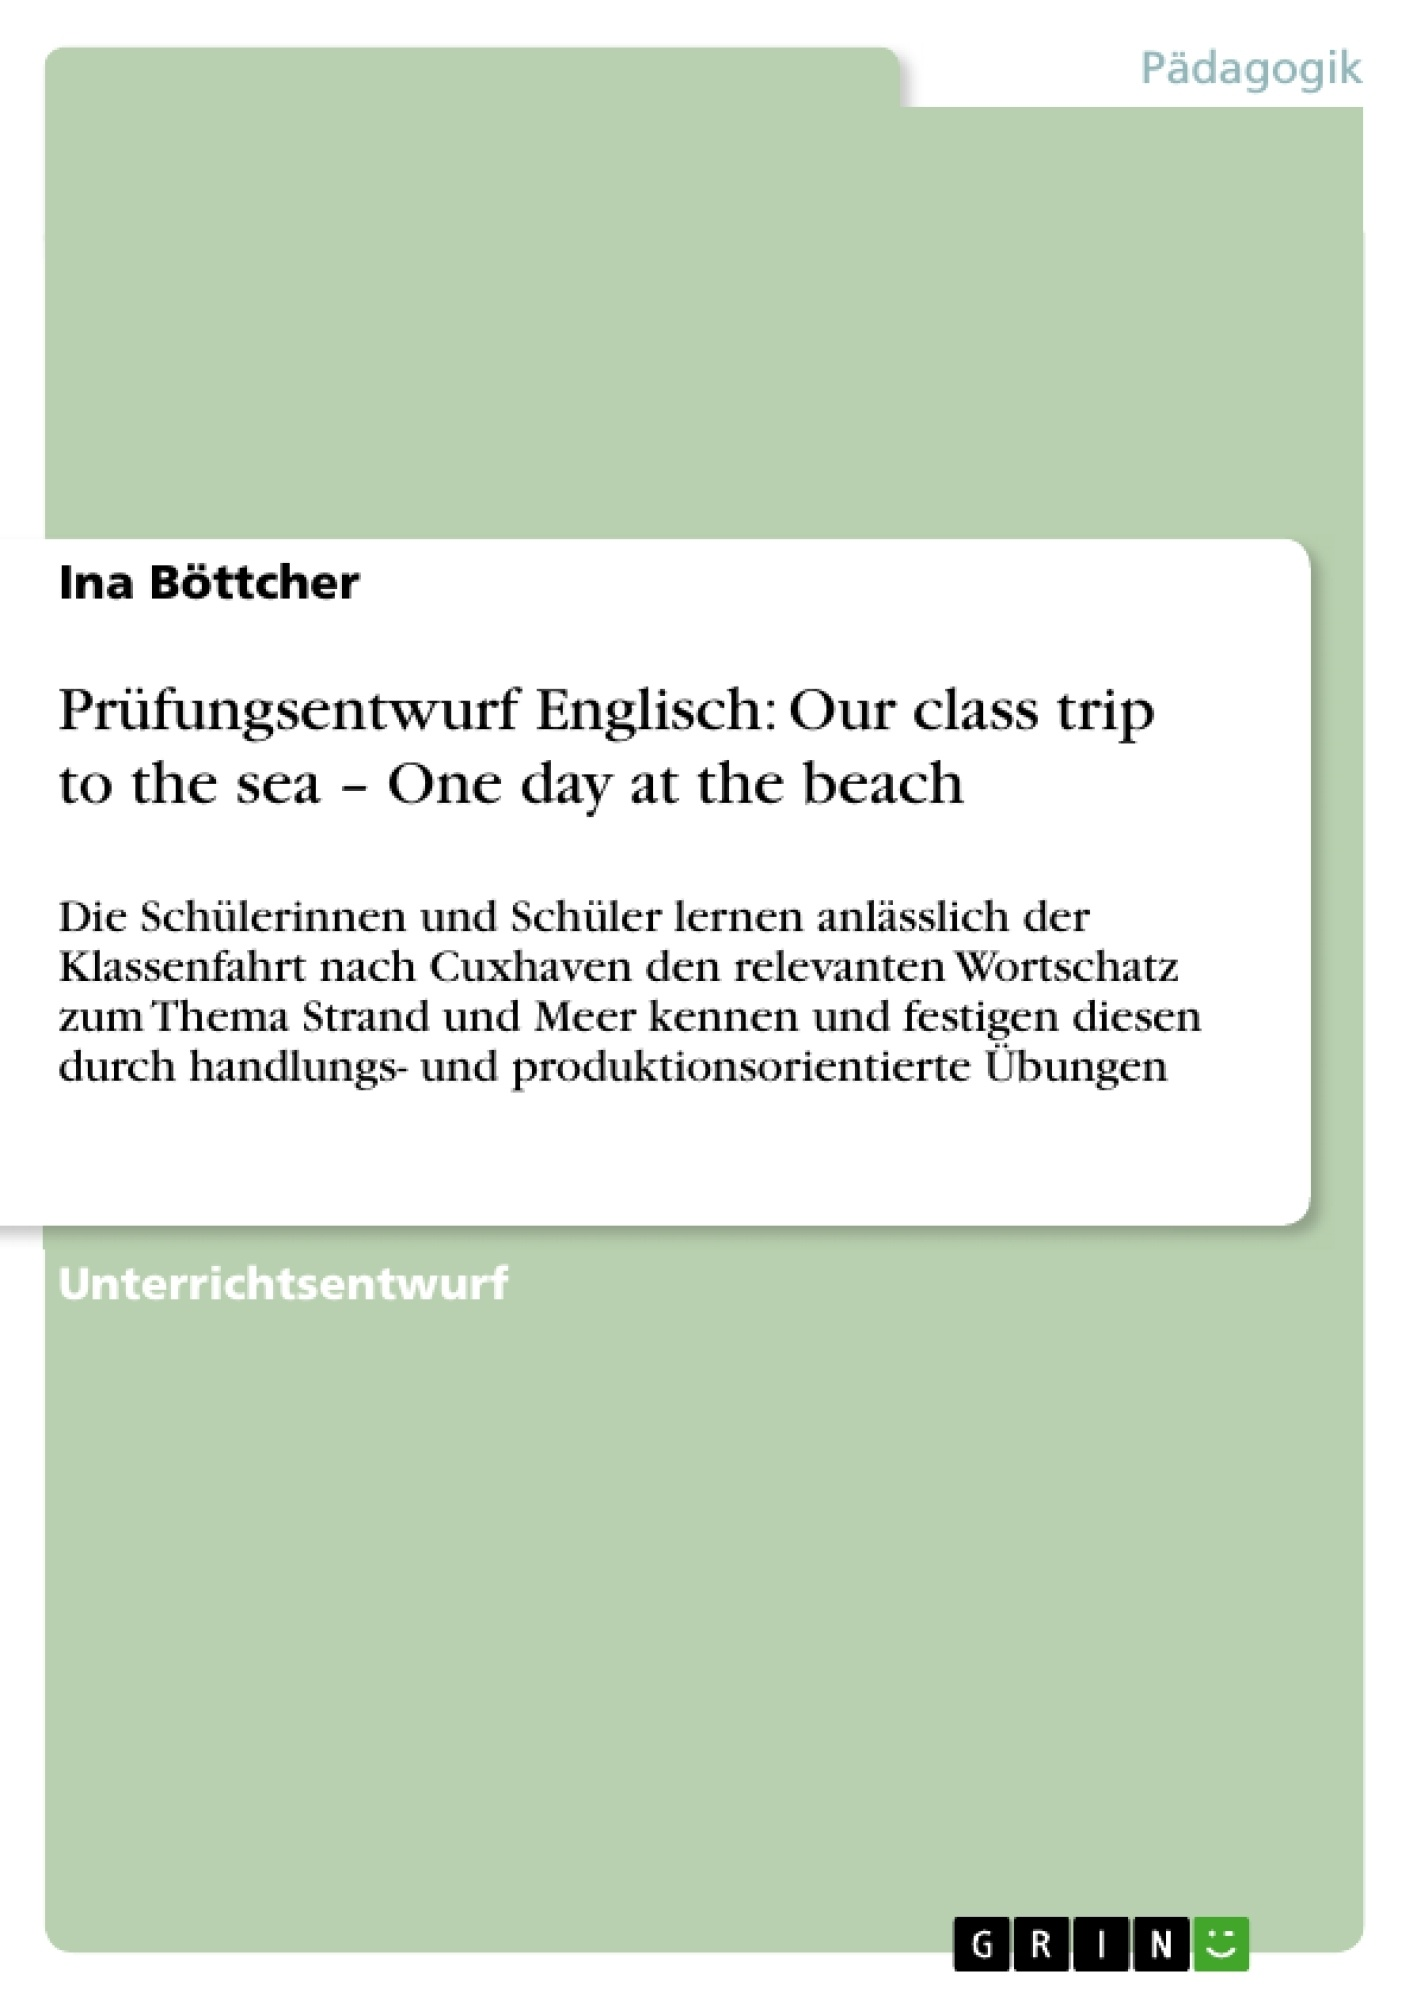 Titel: Prüfungsentwurf Englisch: Our class trip to the sea – One day at the beach